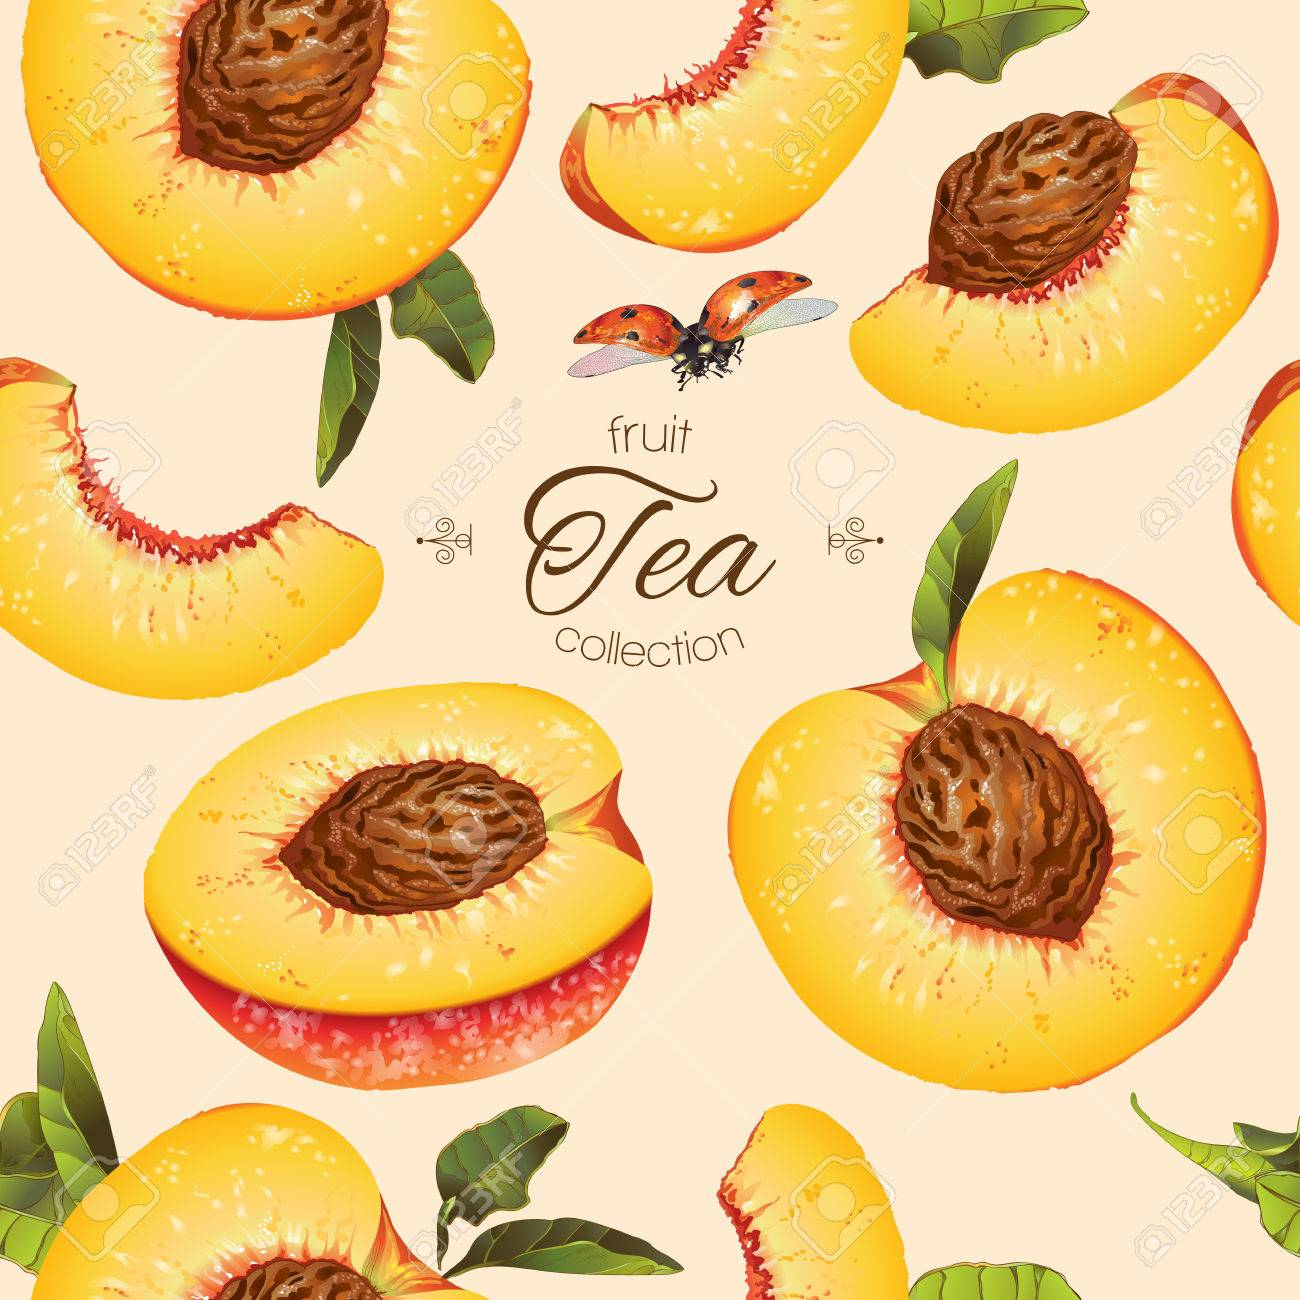 peach seamless pattern. Background design for tea, ice cream, natural cosmetics, candy and bakery with peach filling, health care products. Best for textile, wrapping paper. - 60555282